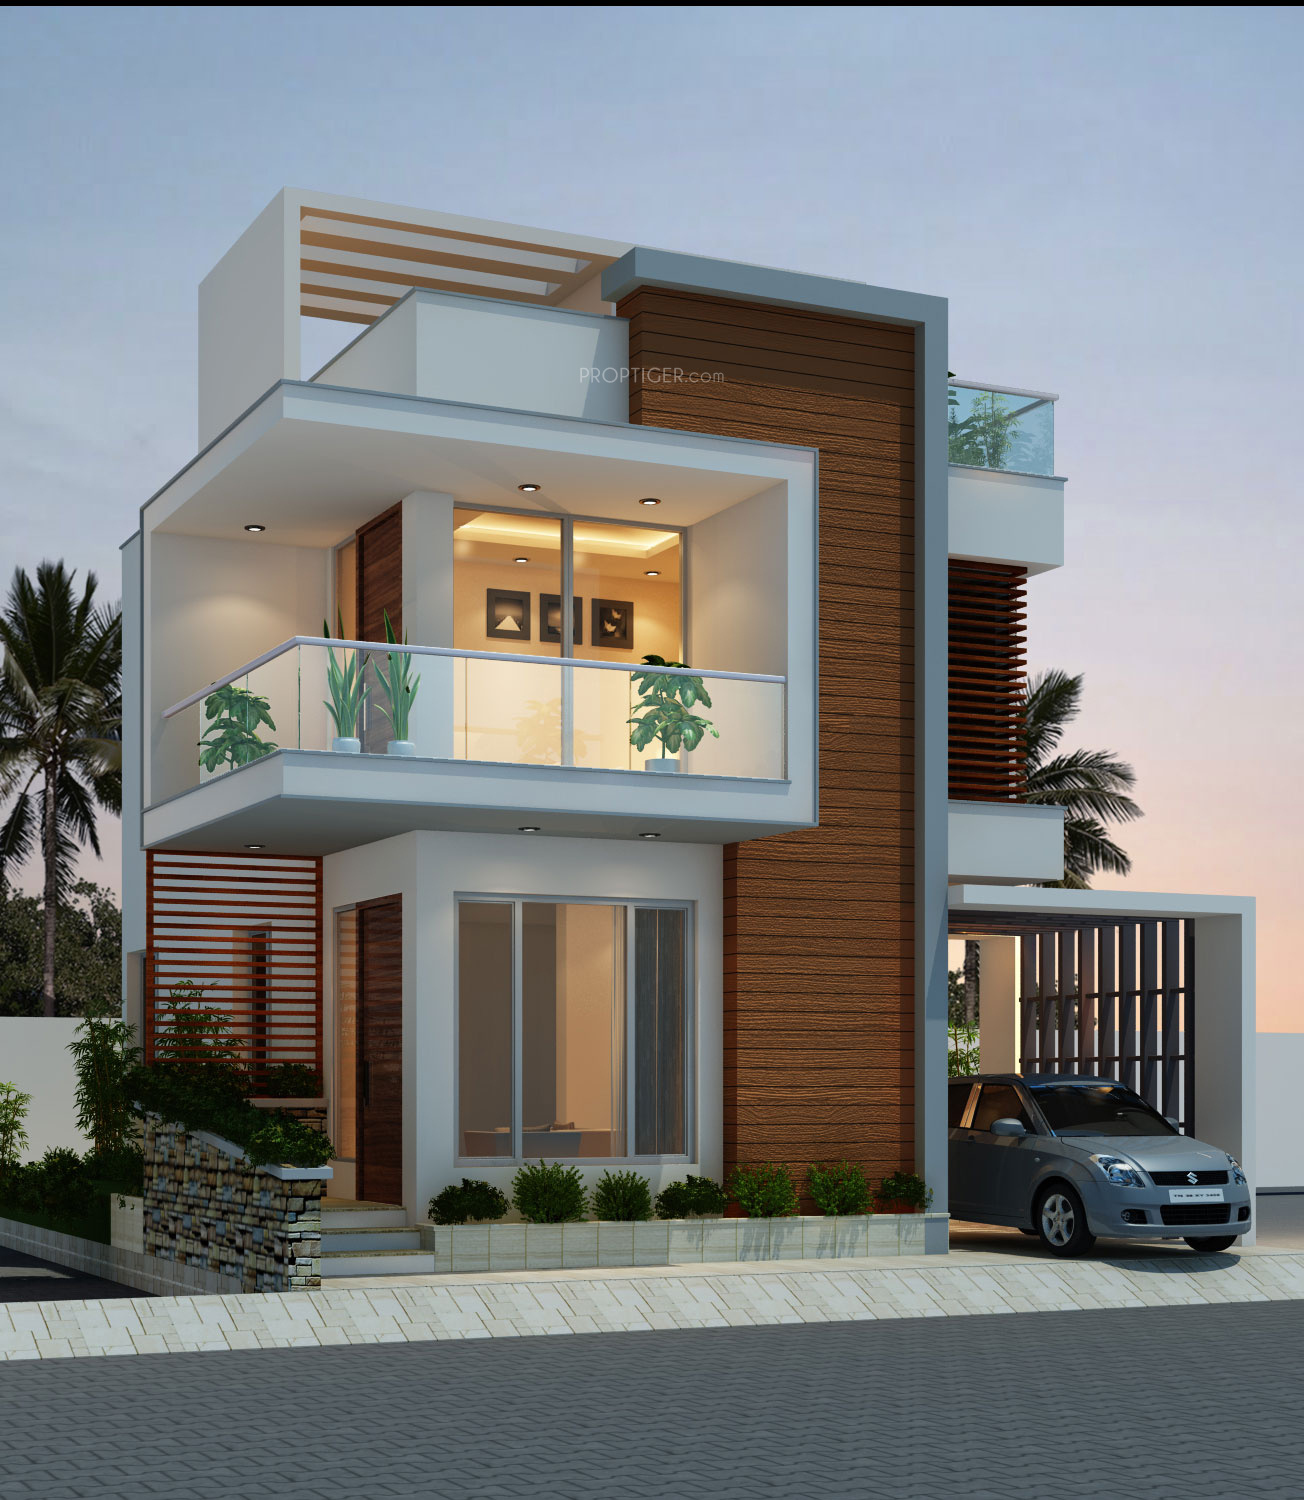 Wood Elevation S : Headway fortune residency villa in perungalathur chennai